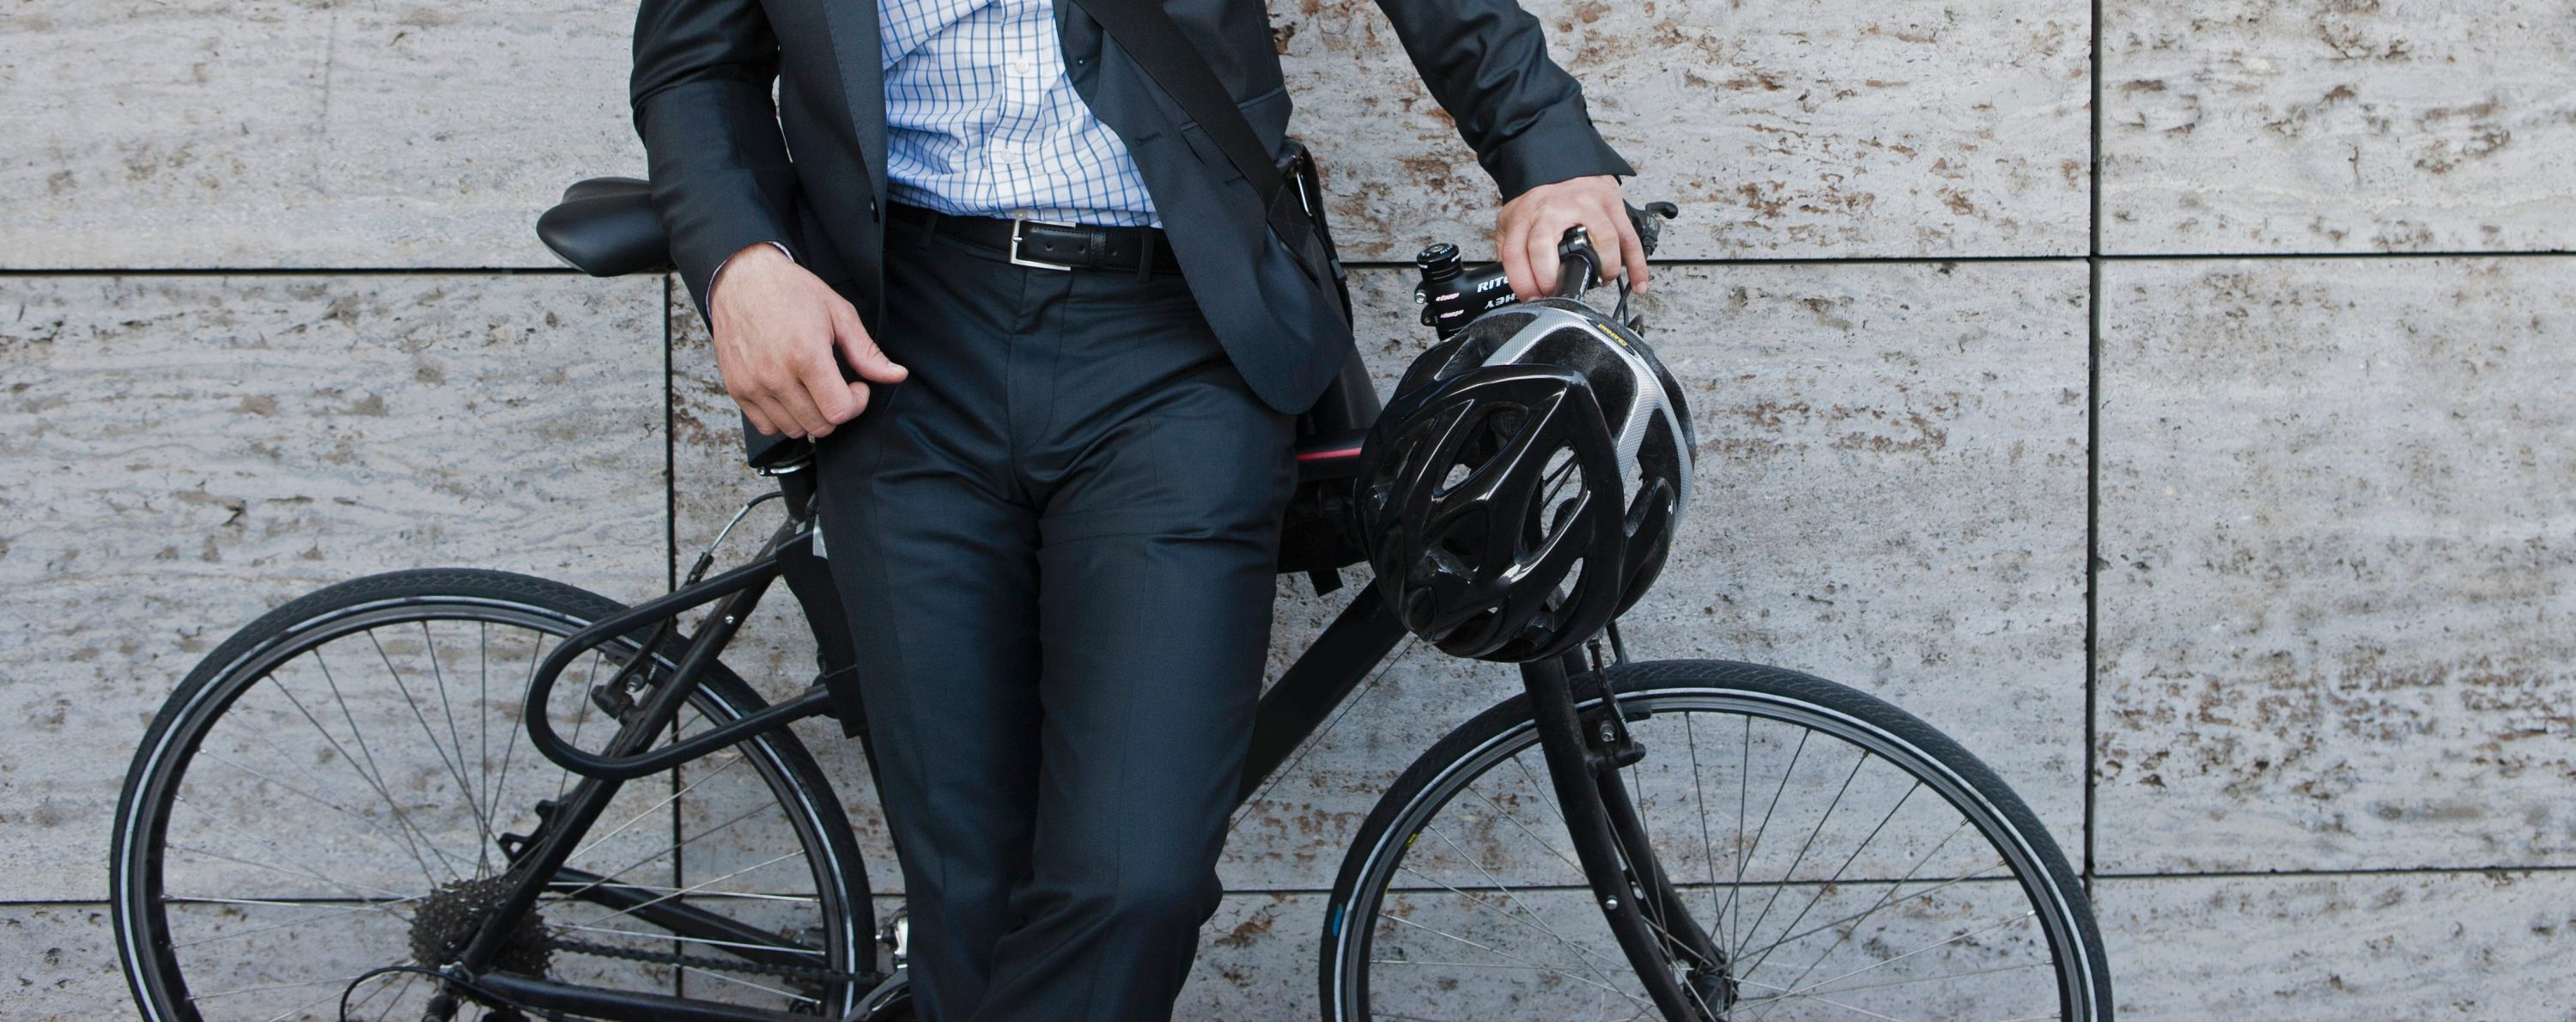 Cycling to work, avoiding the elevator at the office and using the stairs, standing up at your desk: there are many ways to introduce exercise into your daily routine.